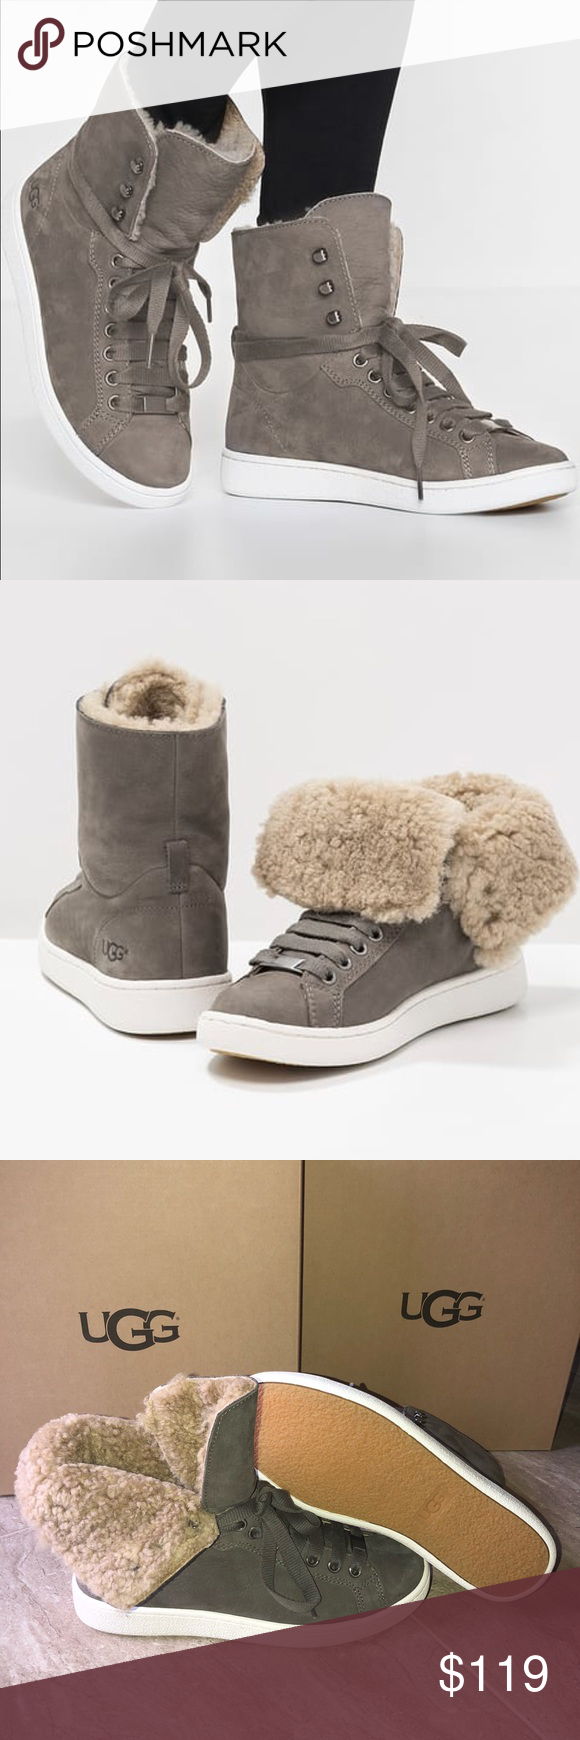 008afe59a2d Ugg starlyn high top sneakers MOUSE Brand new with box. Mouse color ...